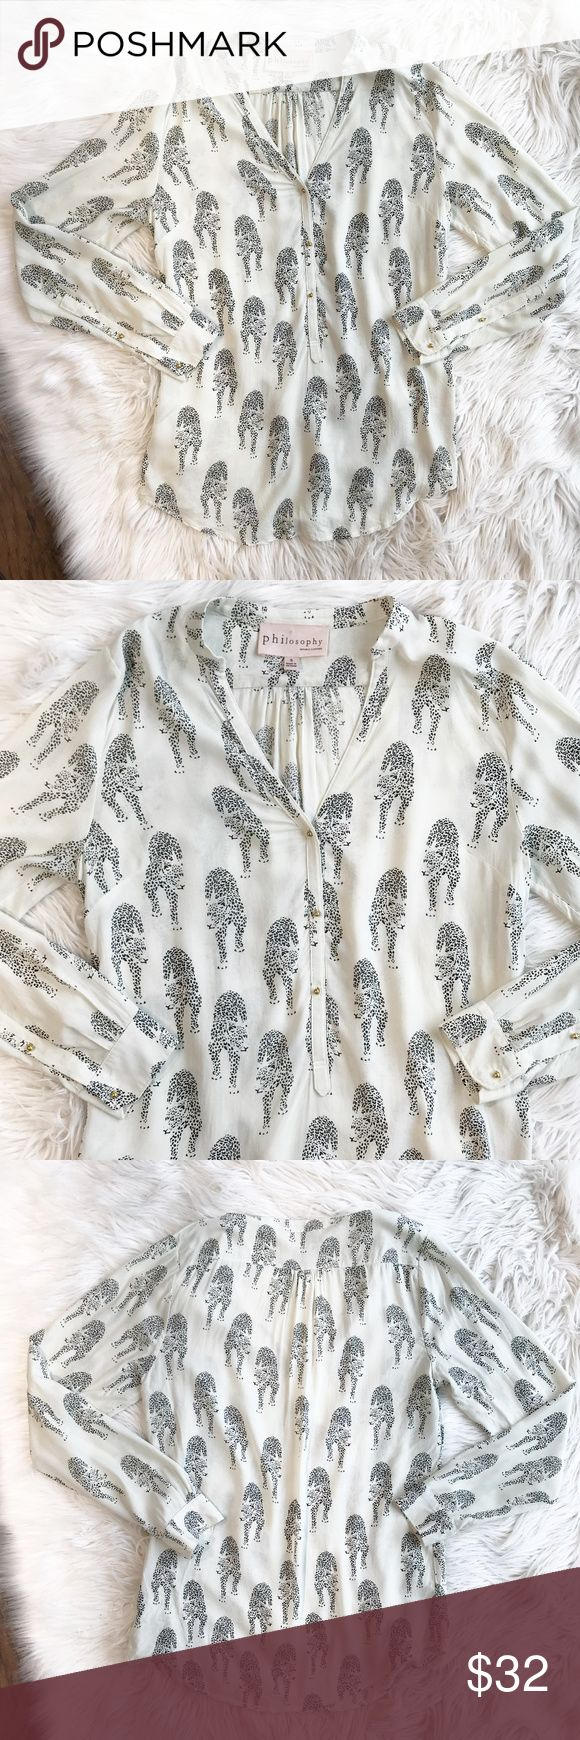 Philosophy Jaguar Print Popover Blouse Philosophy Jaguar Print Popover Blouse in excellent condition. Light weight and semi-sheer material. Size small. No trades, offers welcome. Philosophy Tops Blouses